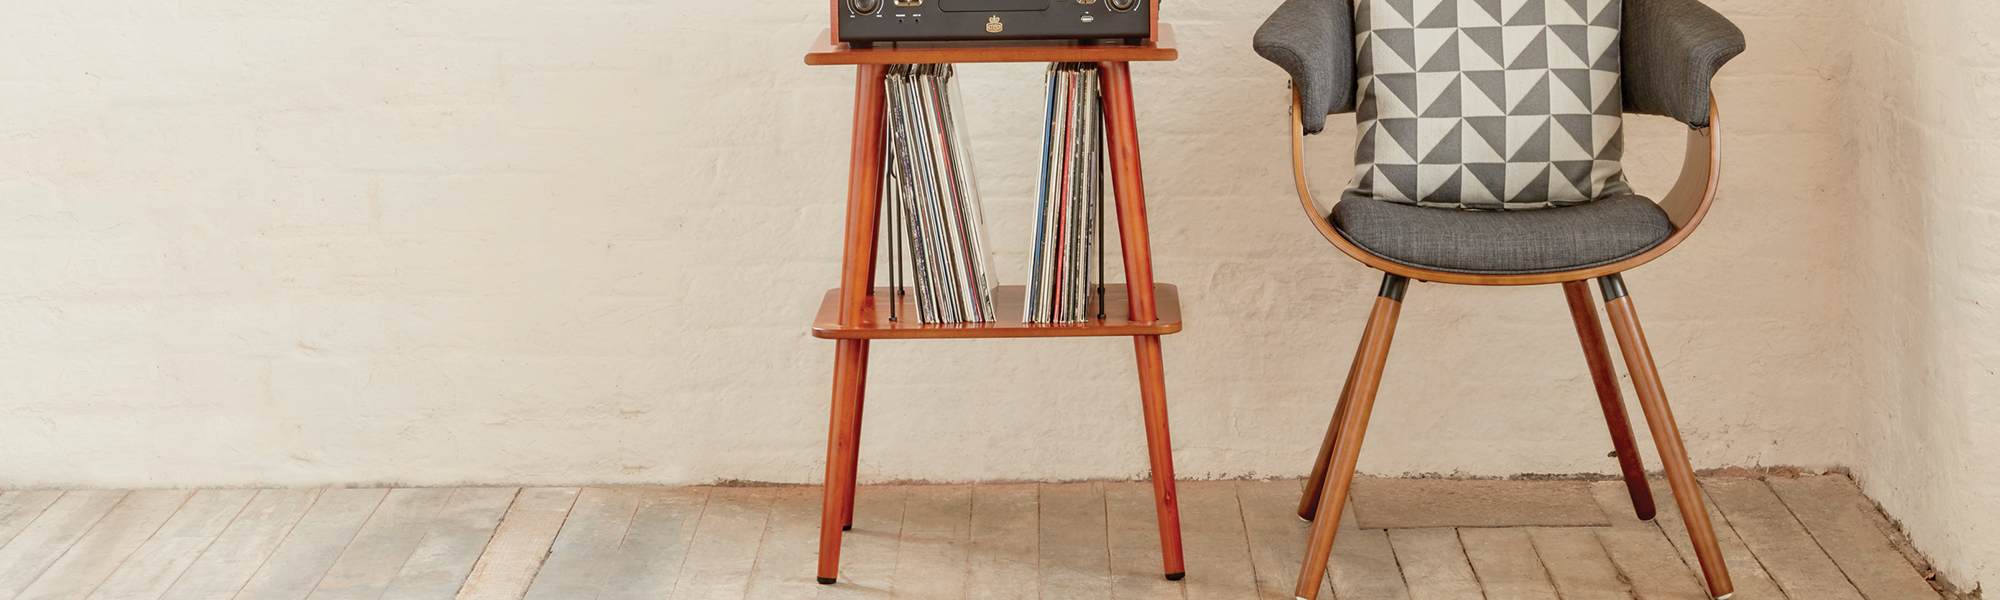 Retro Record Player Stand | Turntable Stand | Vinyl Player Stand